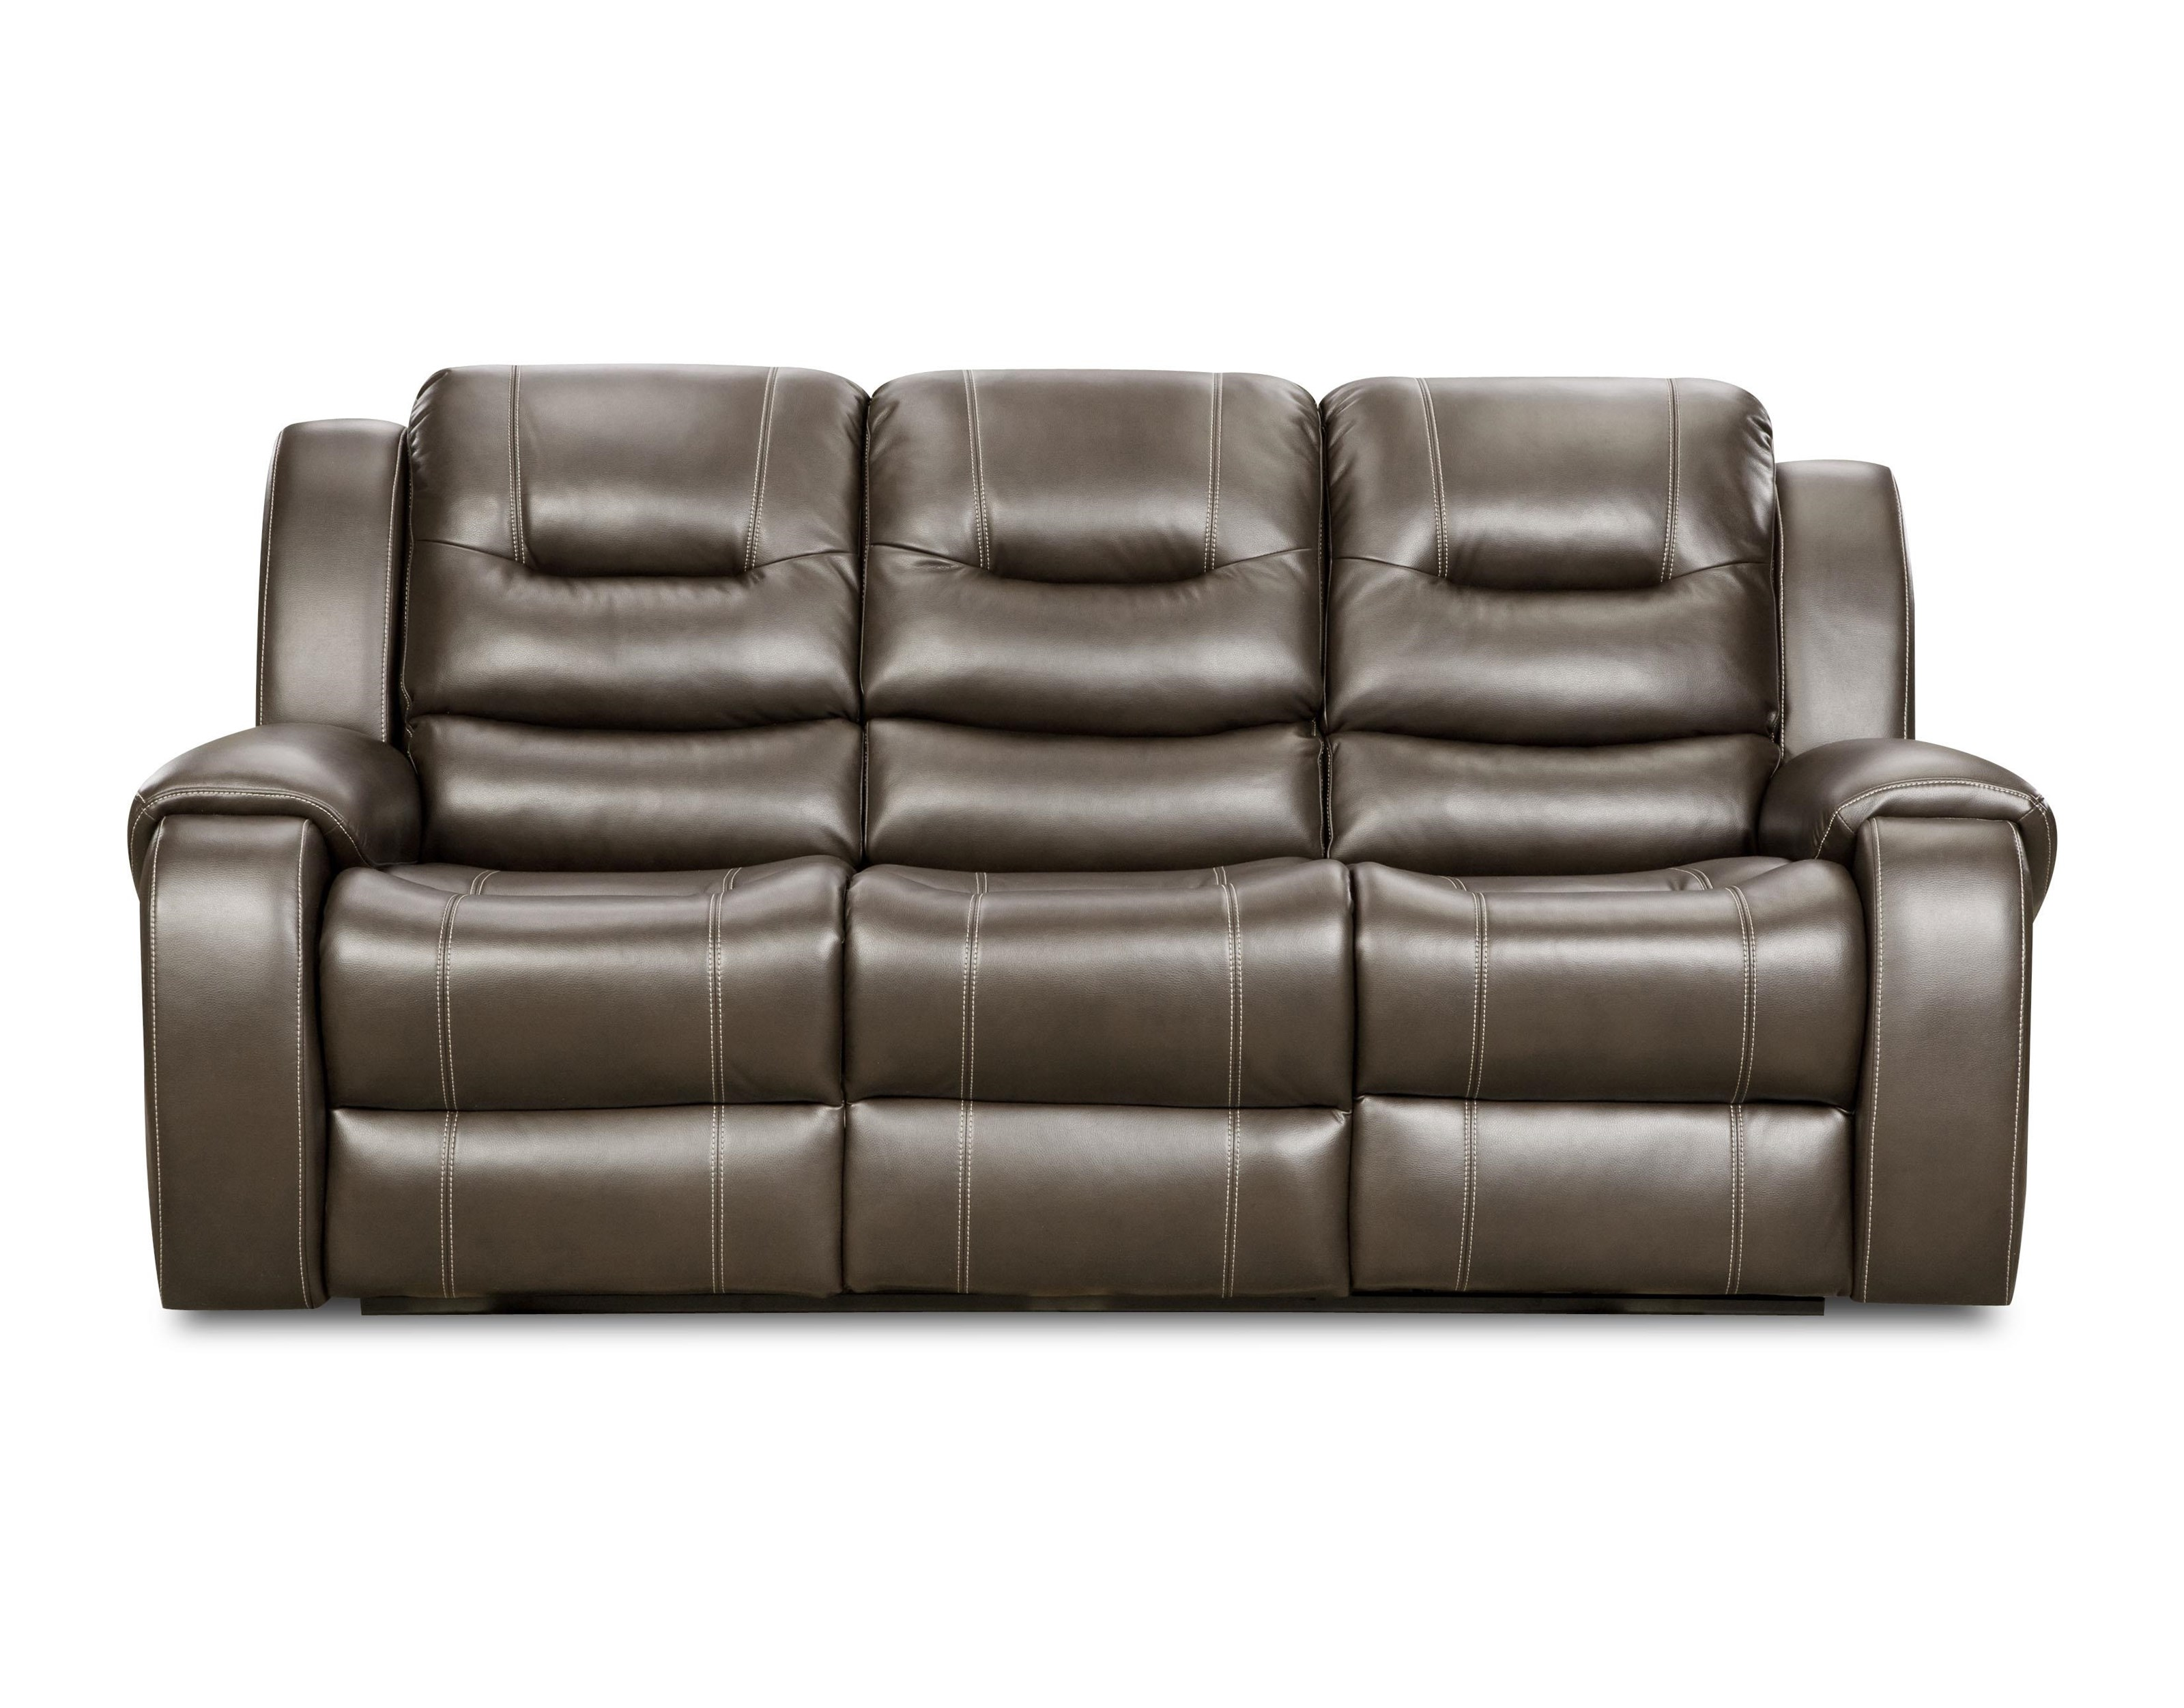 Genial Corinthian Jamestown Jamestown Smoke Reclining Sofa   Item Number:  CORI 71407 30